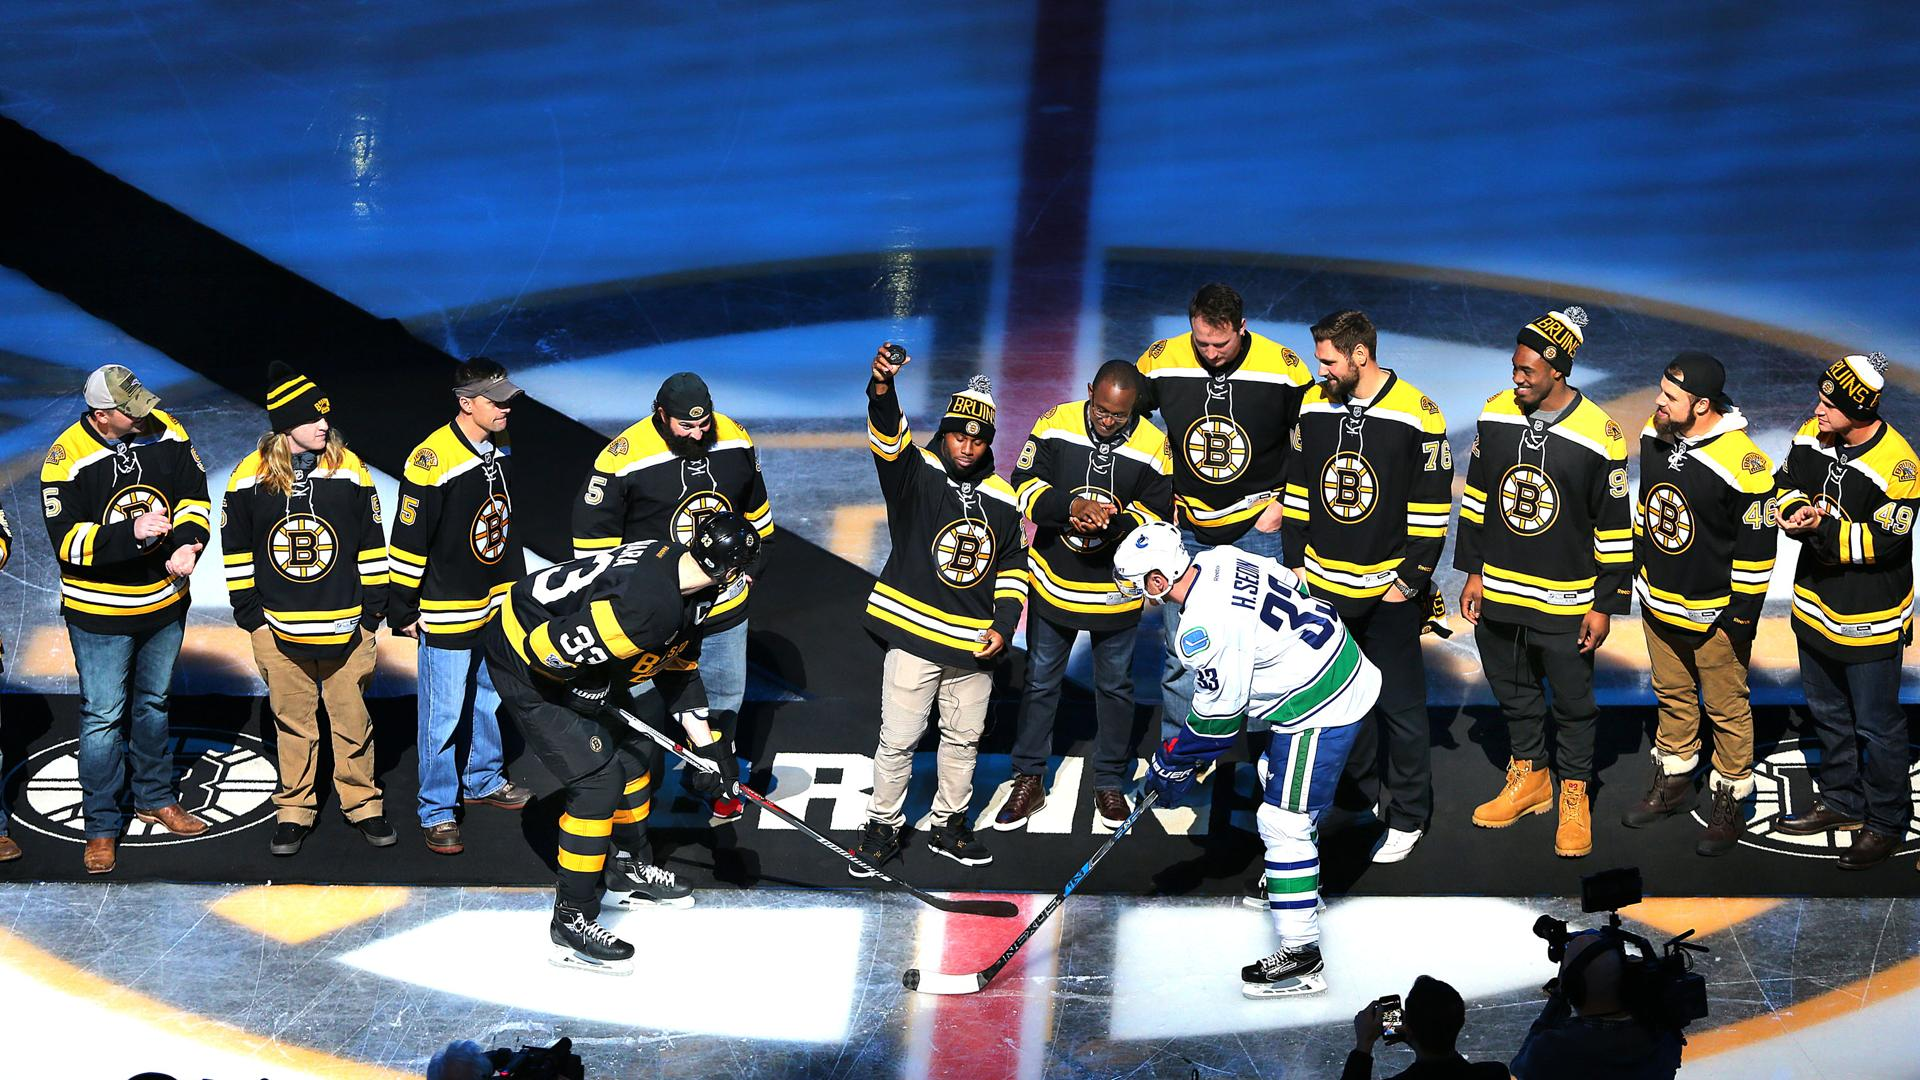 JAMES WHITE, PATRIOTS HONORED BEFORE BRUINS GAME